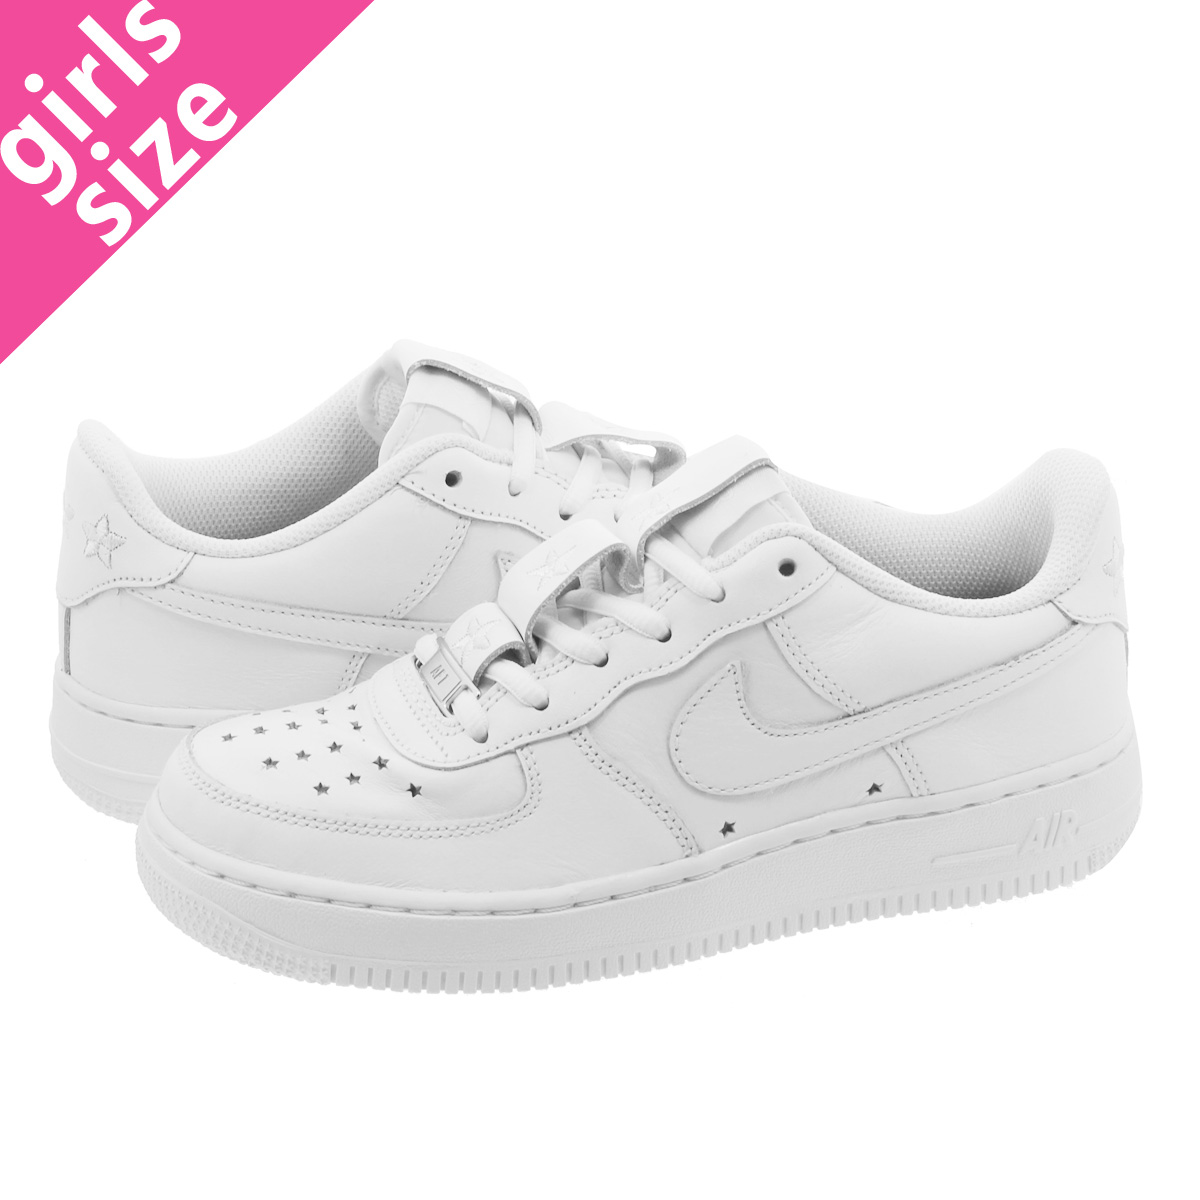 NIKE AIR FORCE 1 LOW Nike air force 1 low WHITEMIDNIGHT NAVY ar0688 100